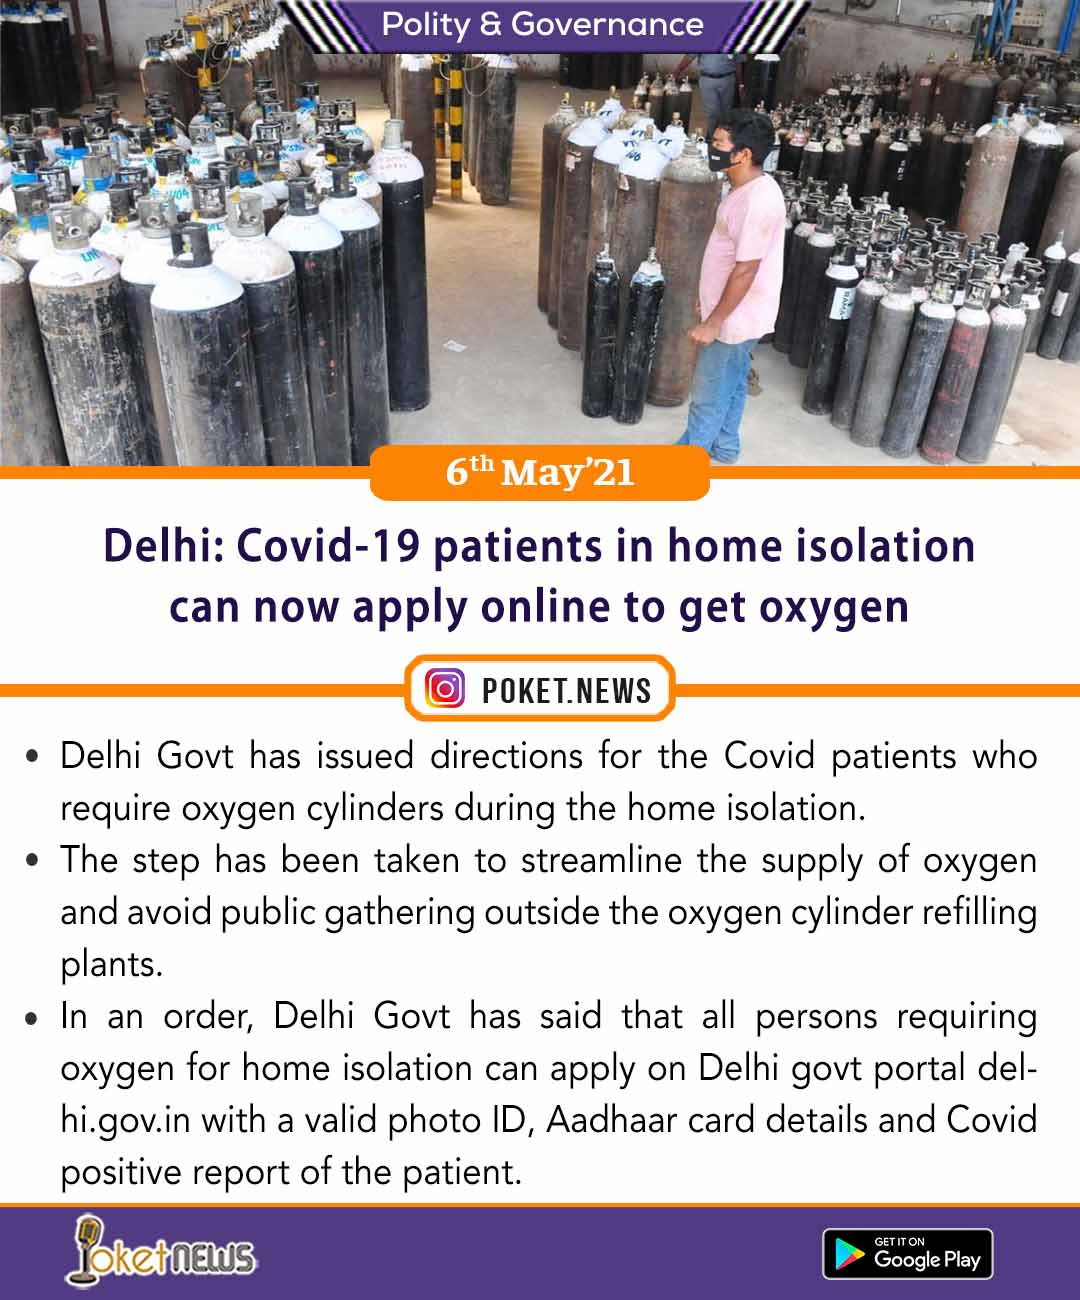 Delhi: Covid-19 patients in home isolation can now apply online to get oxygen